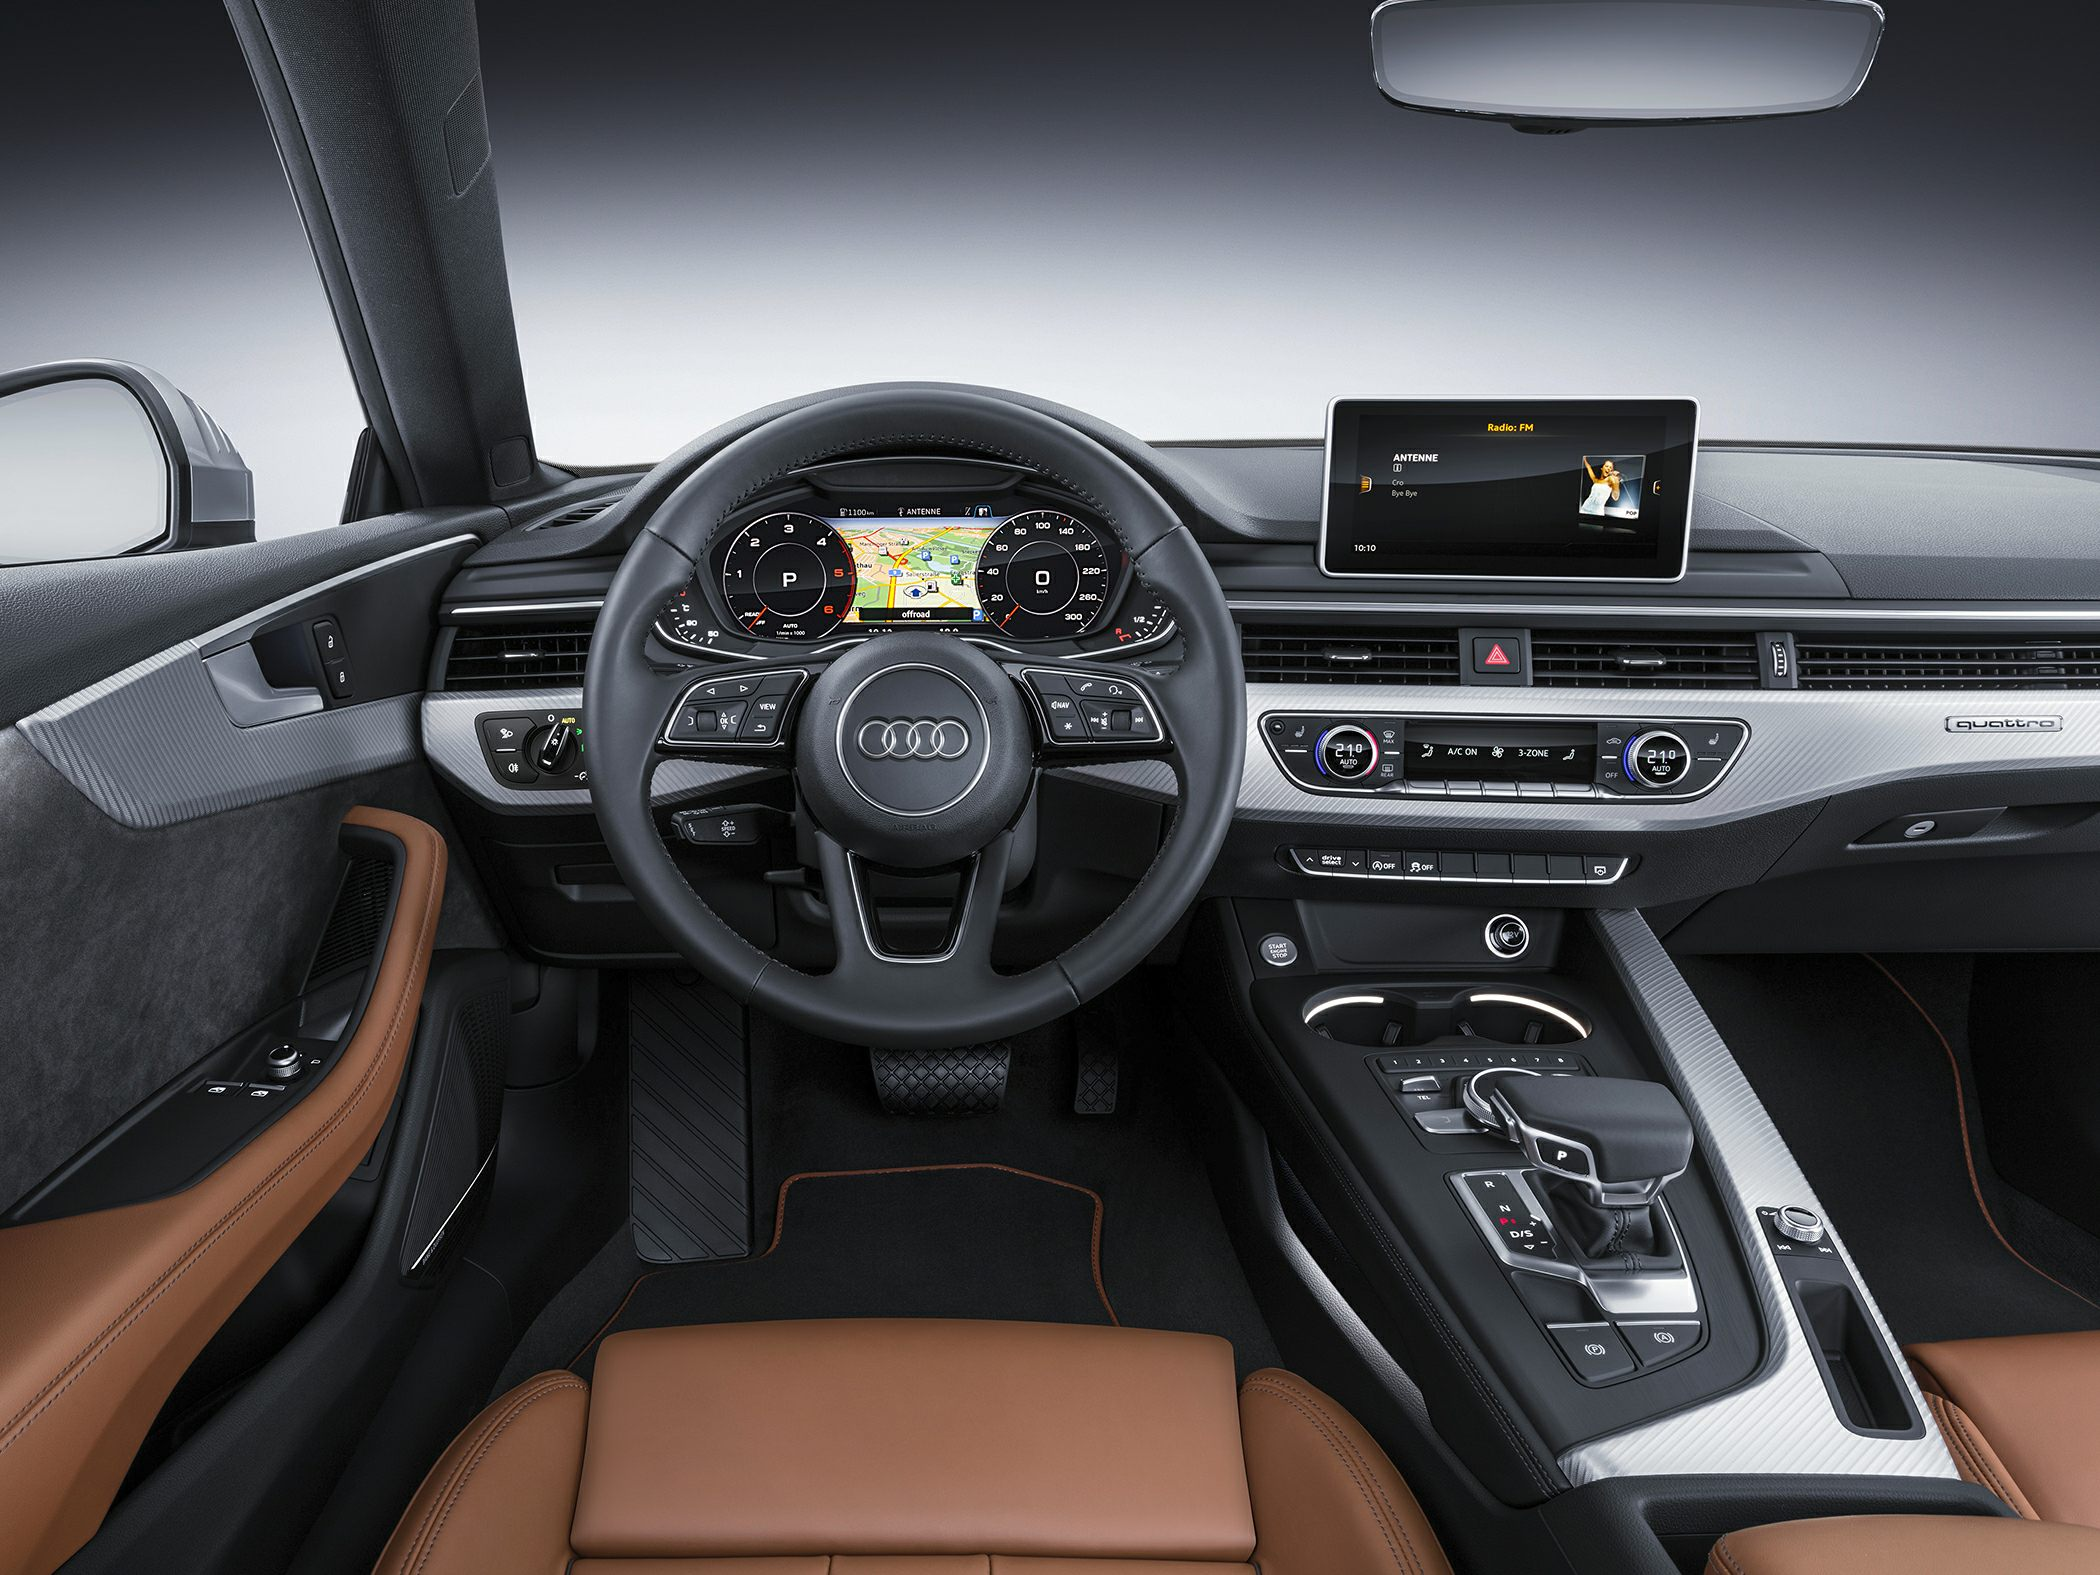 audi wait review you advertisement to s sportback t leasing can drive line reviews it by car tfsi